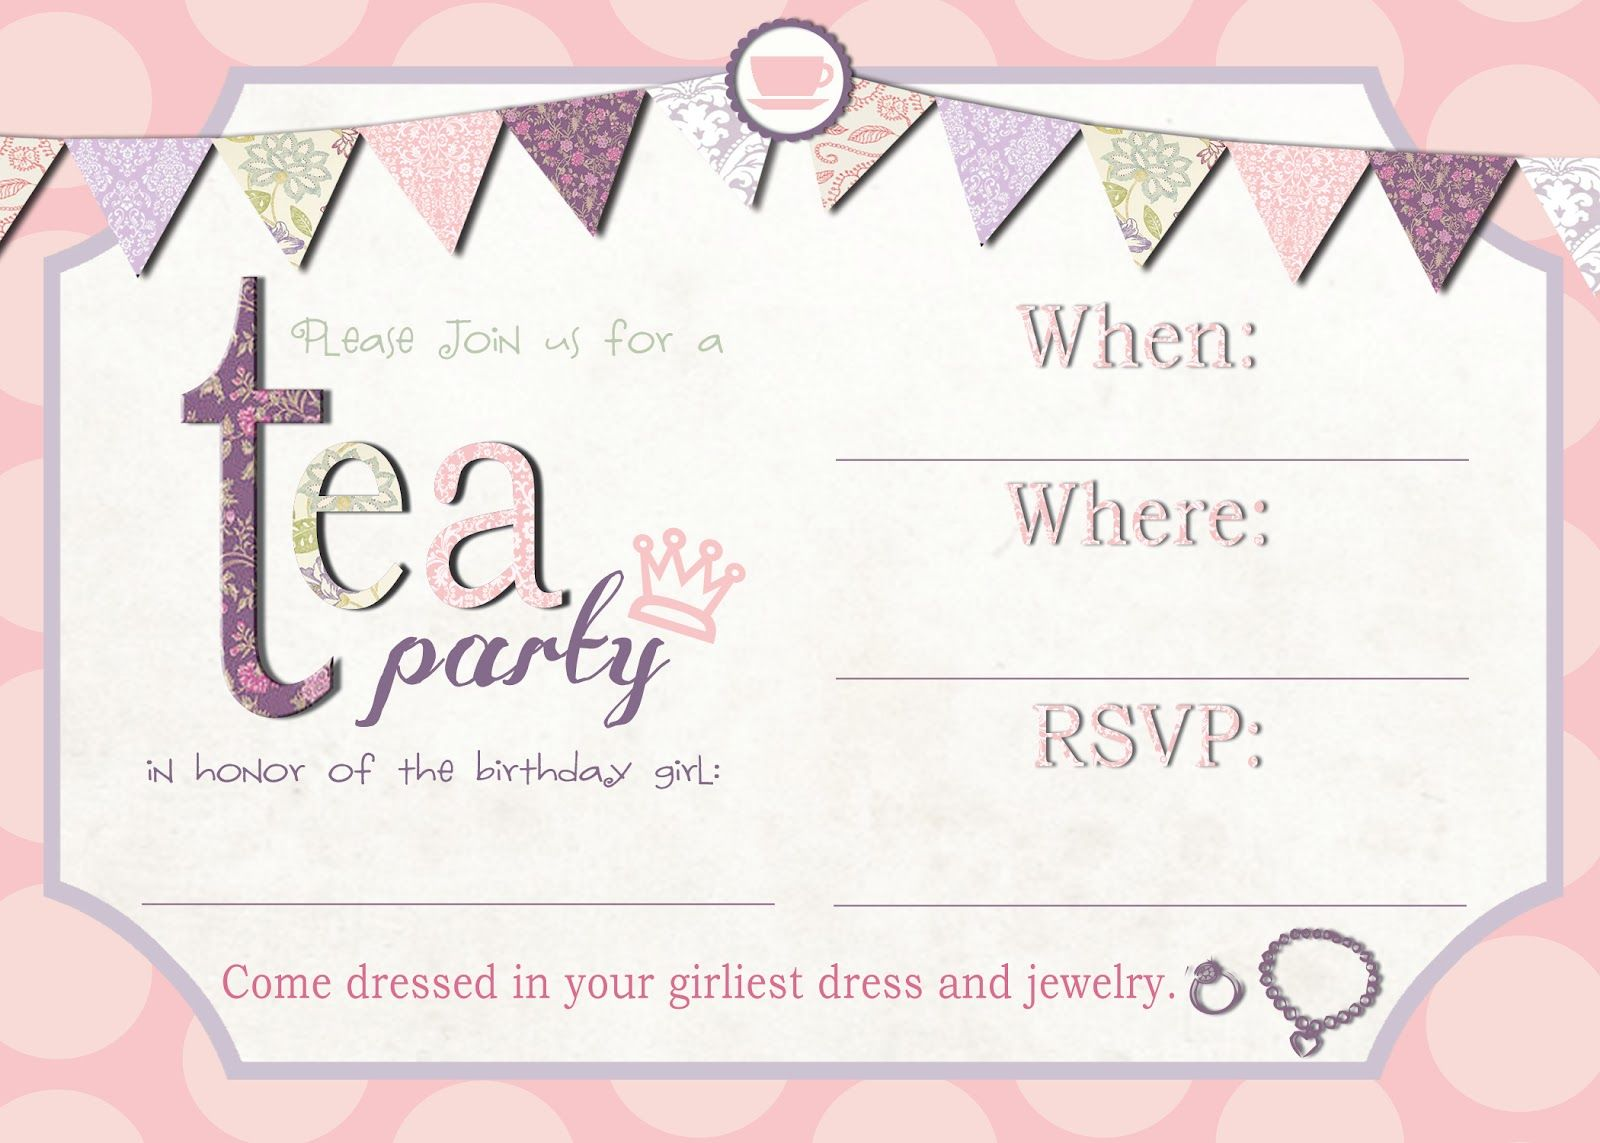 Tea Party Invitation Template Download U2013 InviteTown  Free Birthday Party Invitation Templates For Word